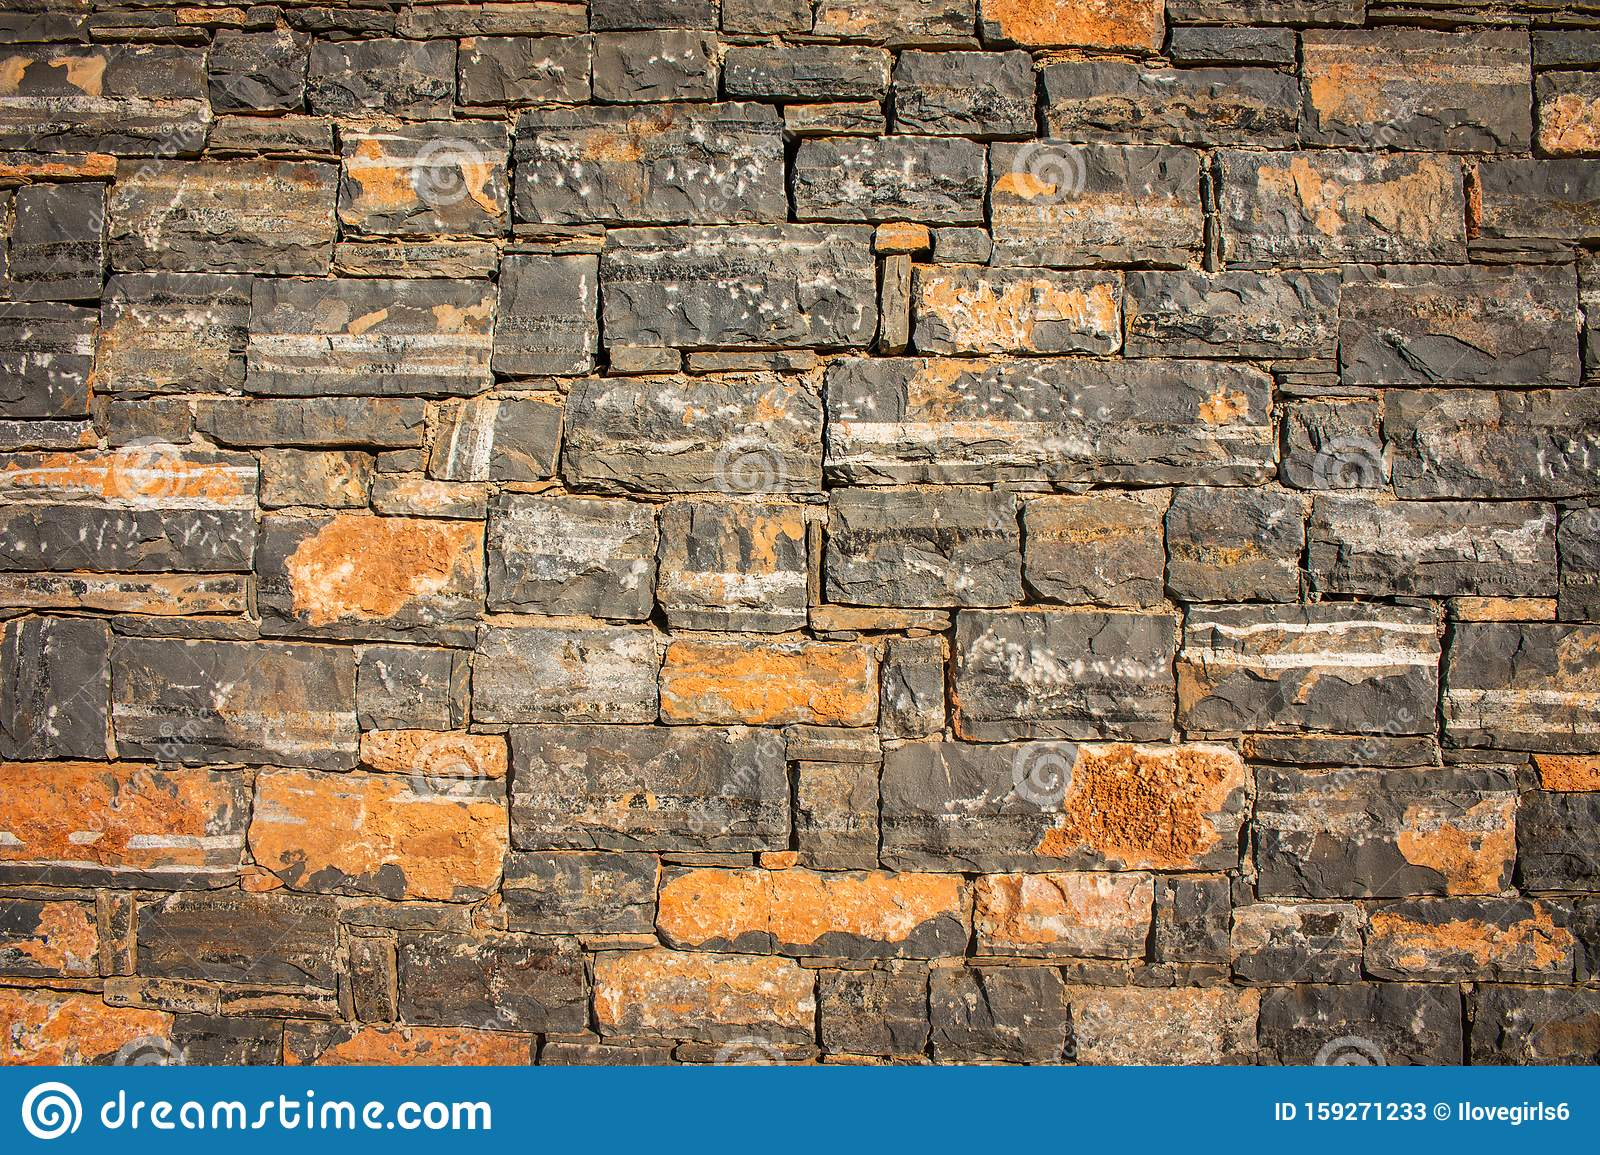 Hd Texture Of A Stone Old Stone Wall Texture Background Grey Stone Wall As A Background Or Texture Stone Wall Of Natural Stones Stock Image Image Of House Design 159271233